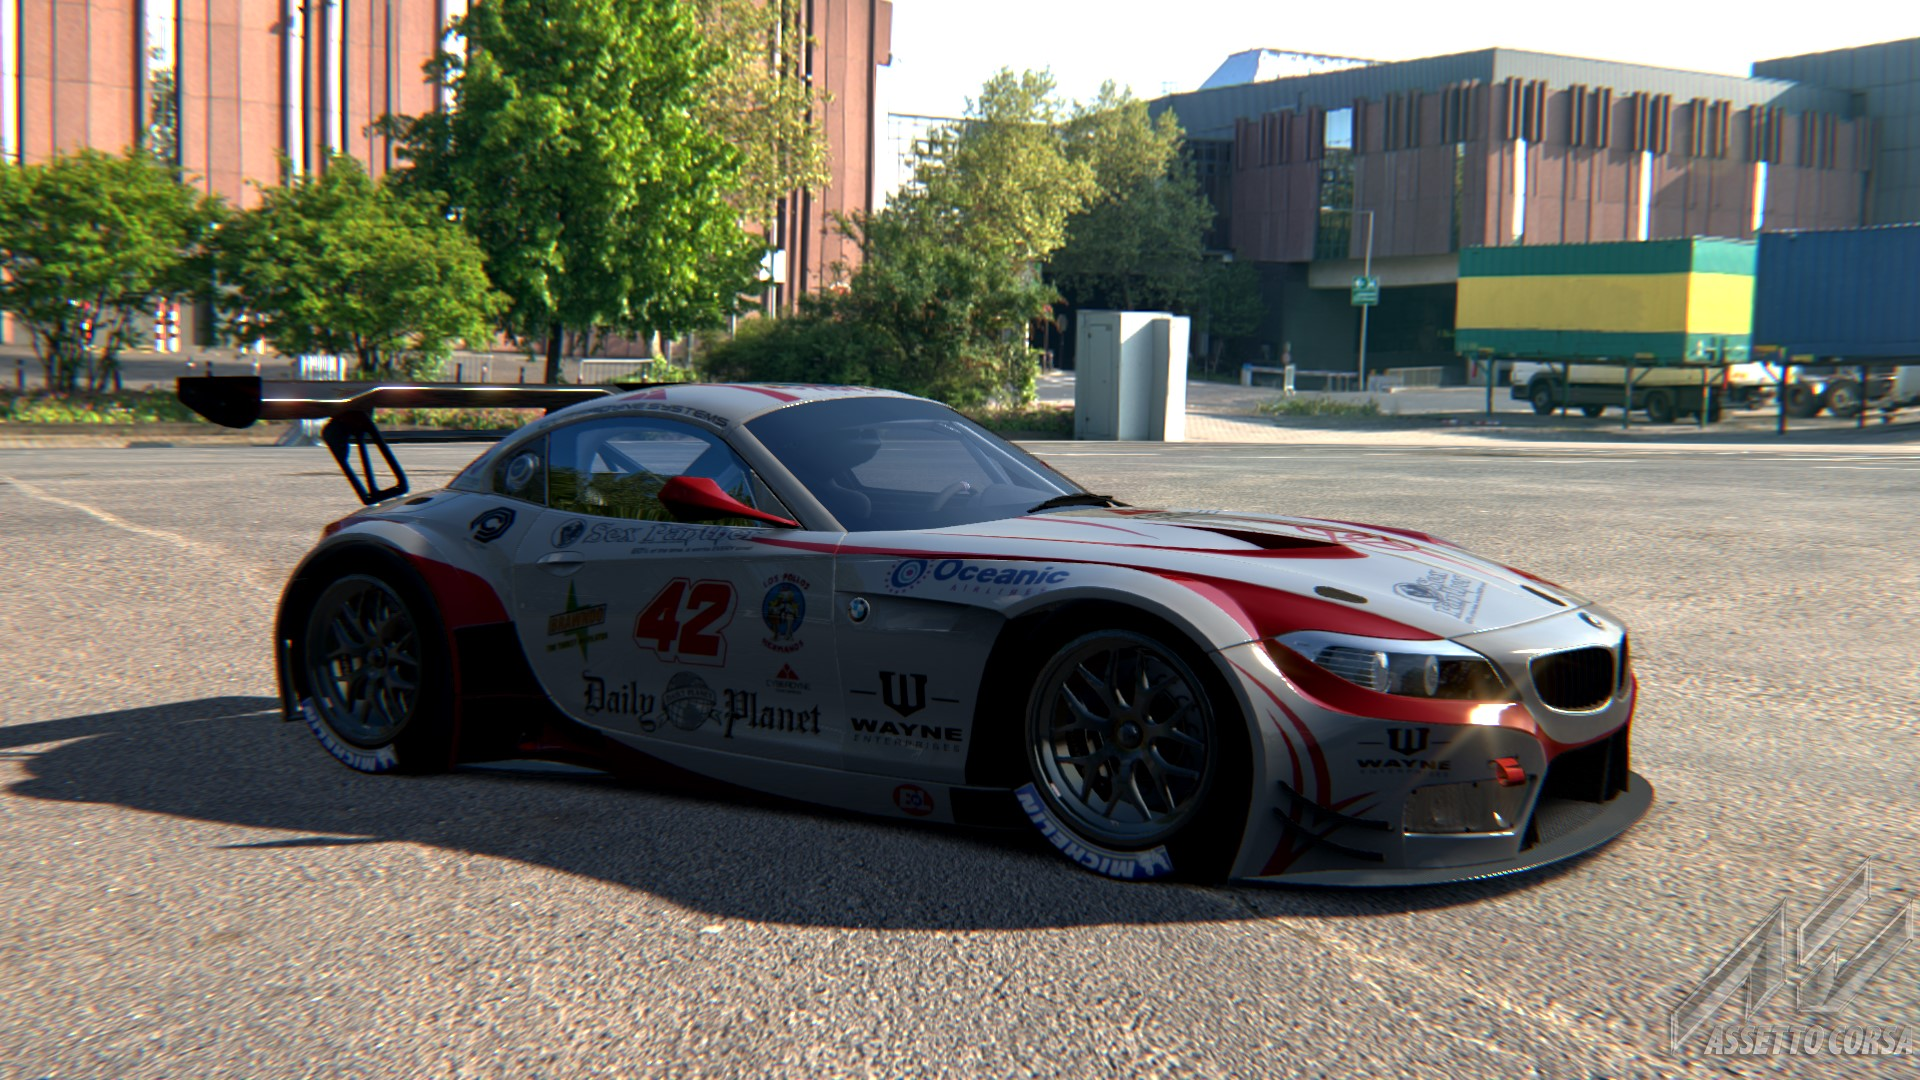 Showroom_bmw_z4_gt3_16-3-2015-23-37-6.jpg